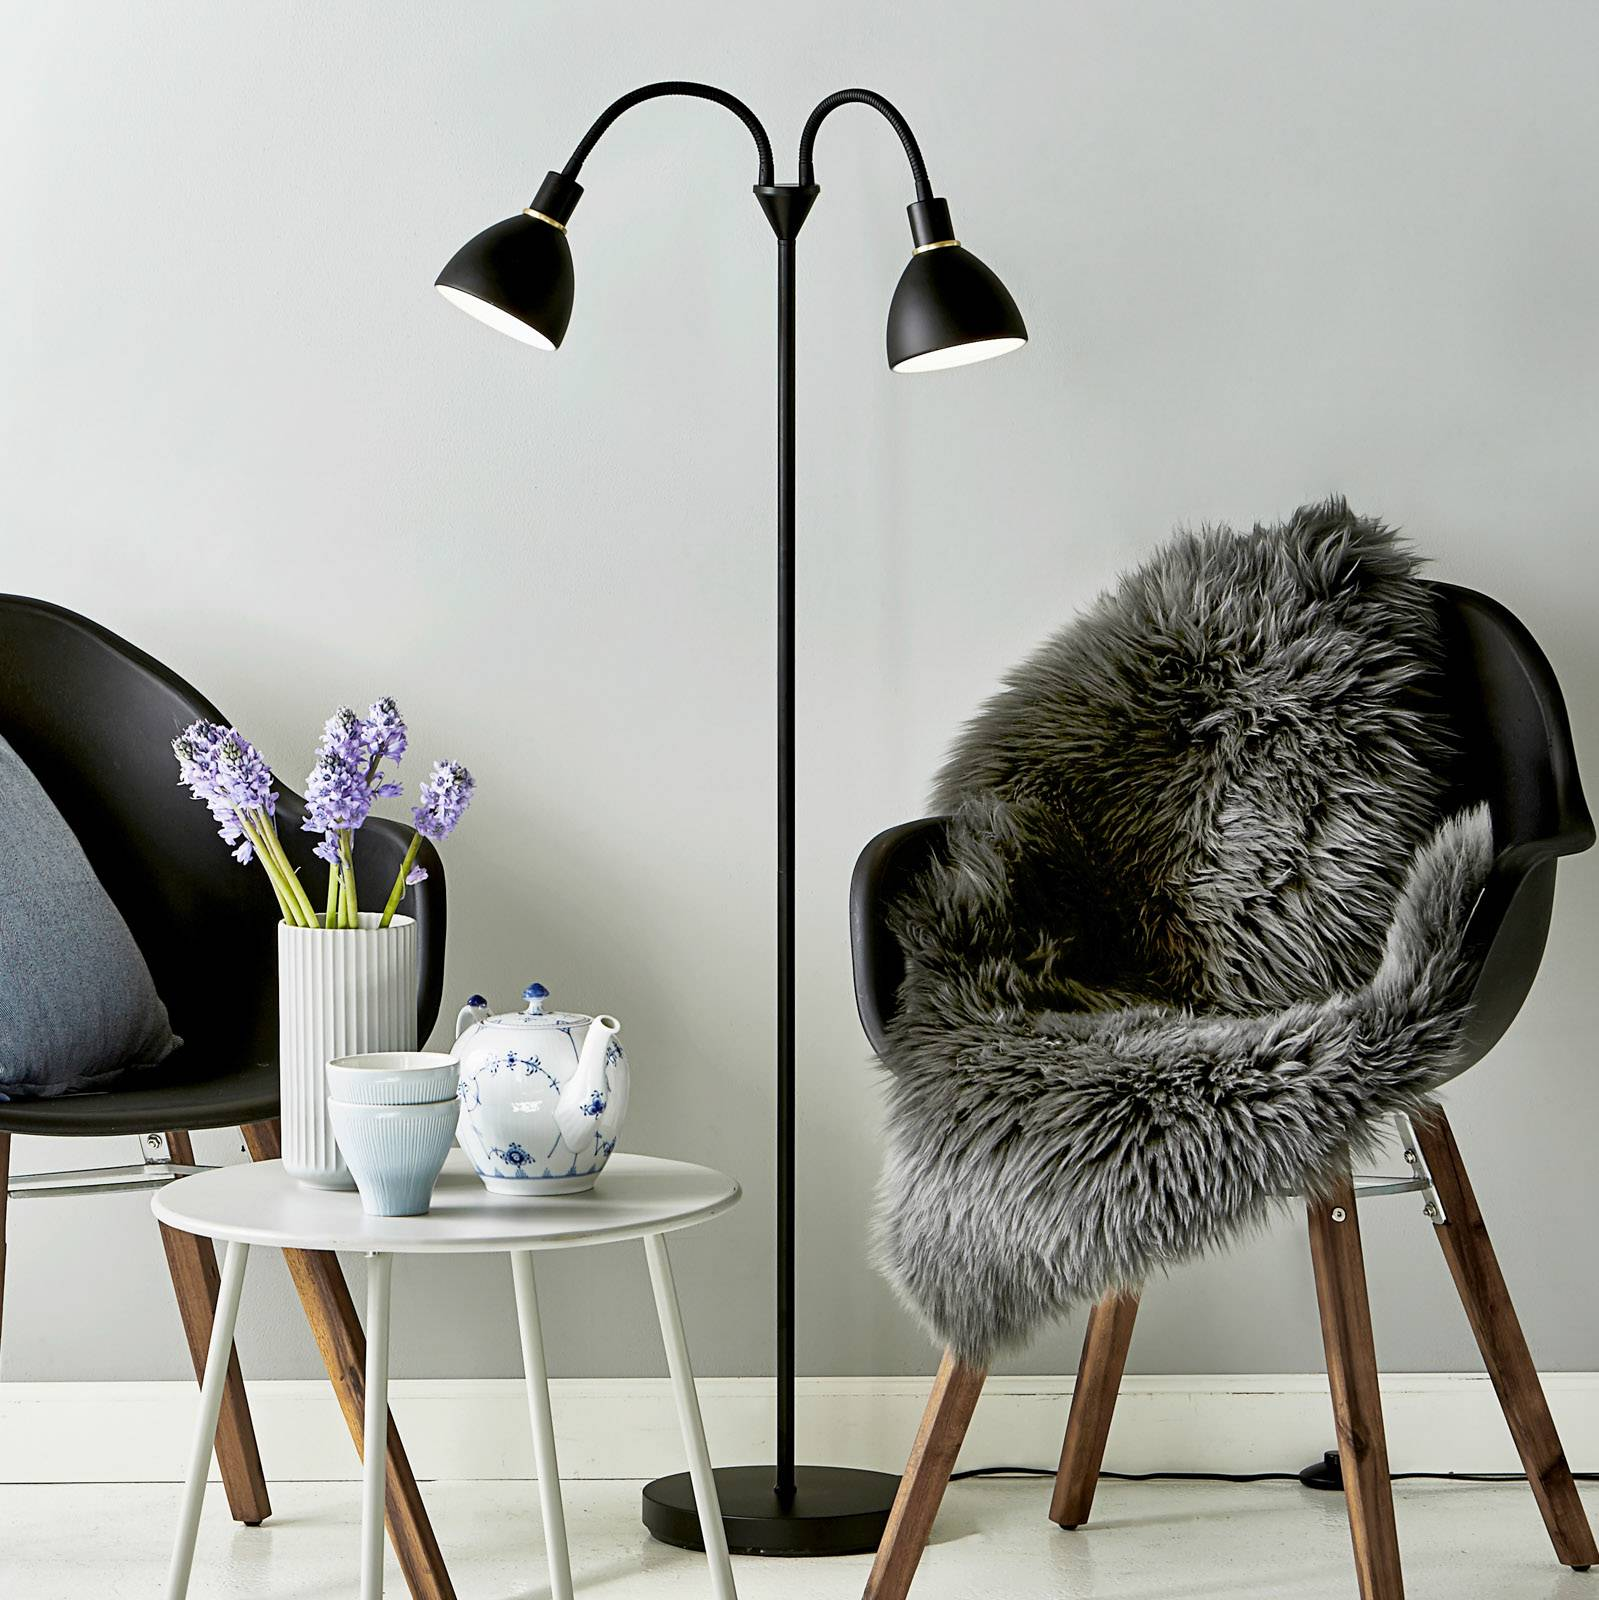 Eglo Verlichting Made Lighting Find Nordlux Products Online At Wunderstore